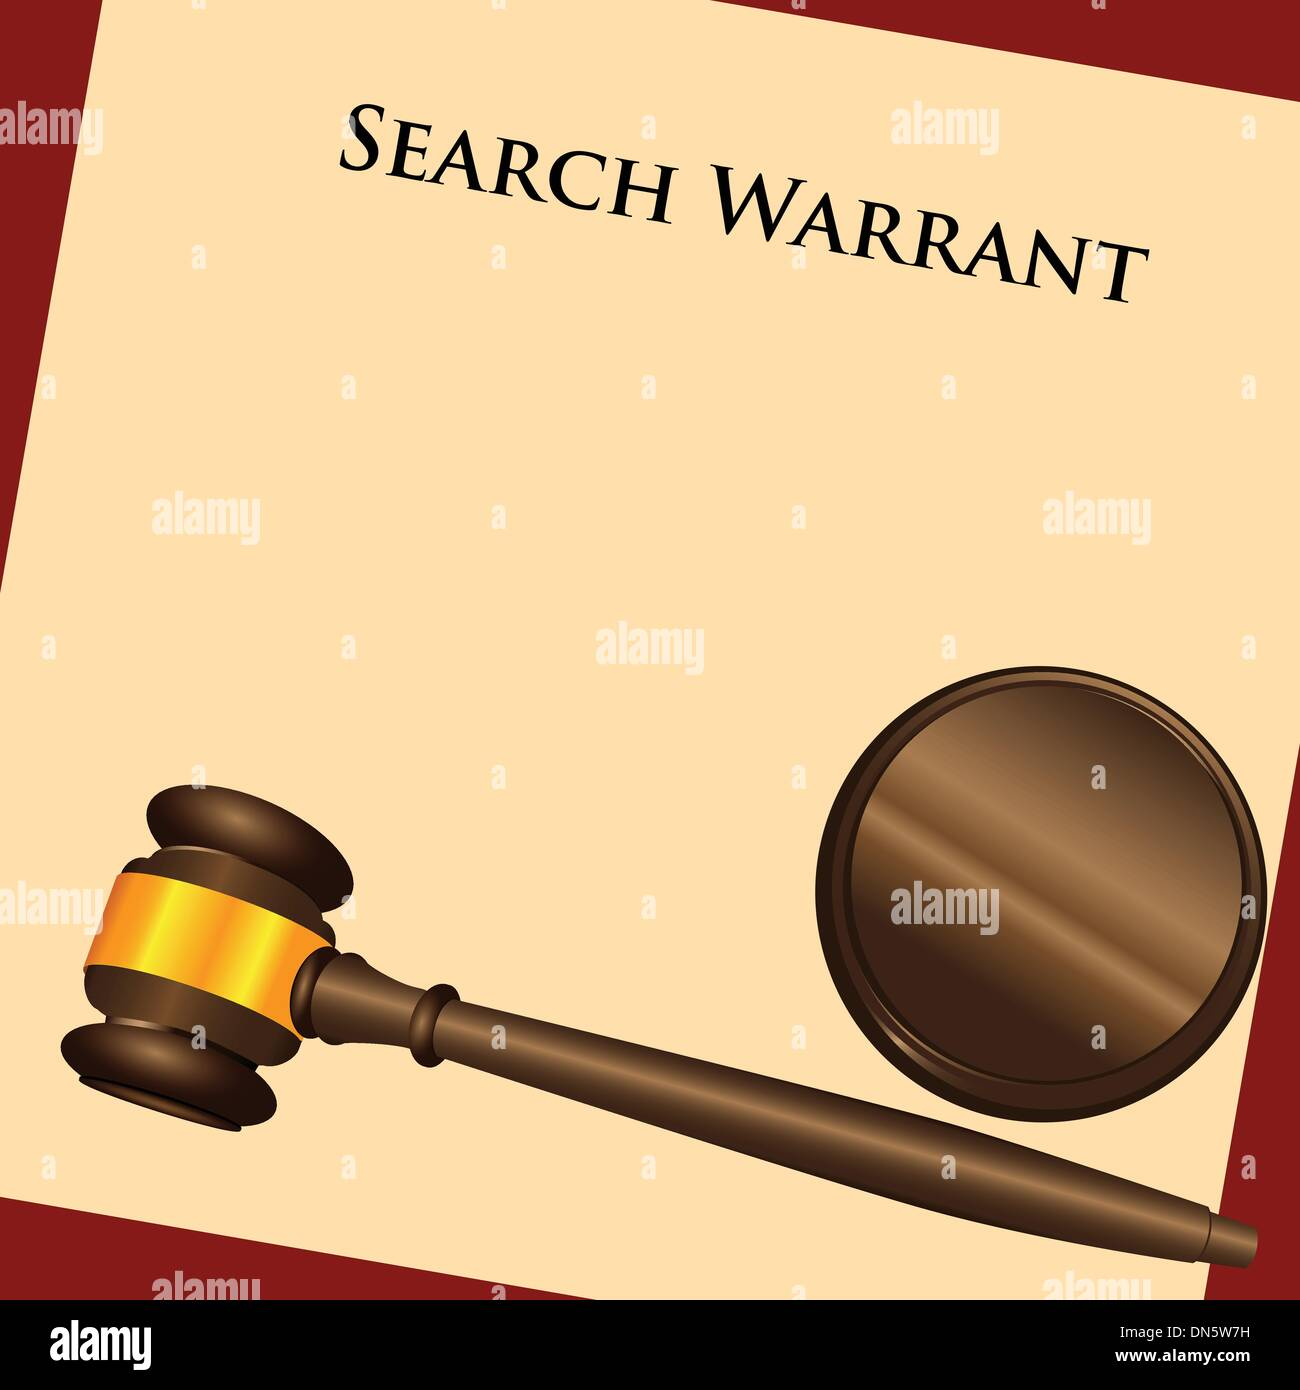 Search Warrant - Stock Image